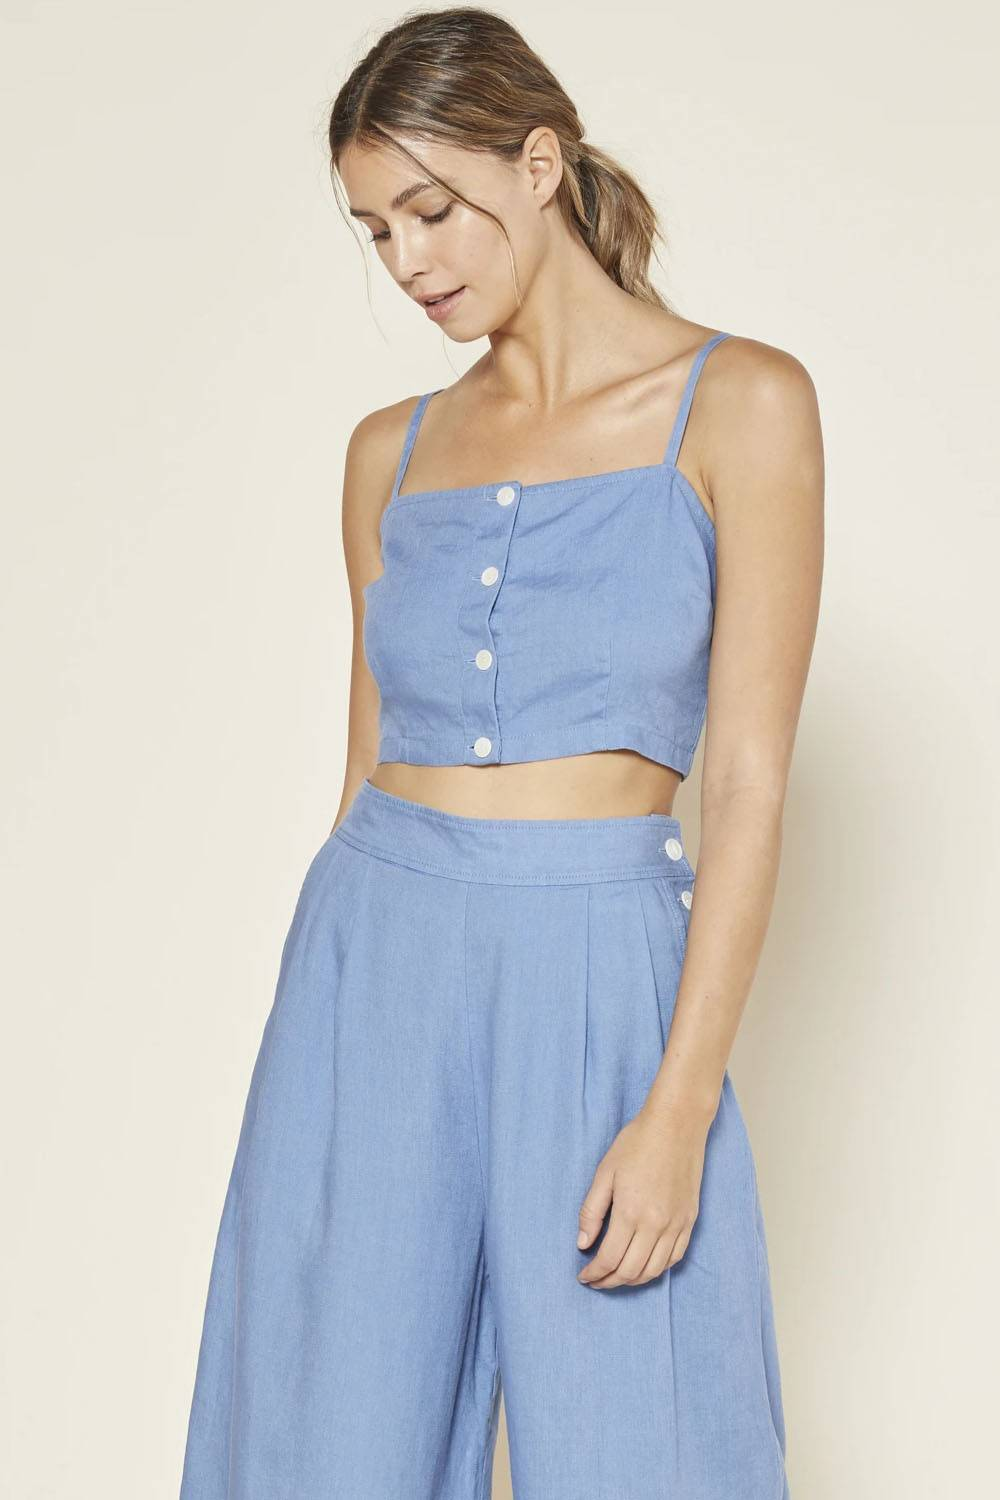 outerknown sustainable crop top